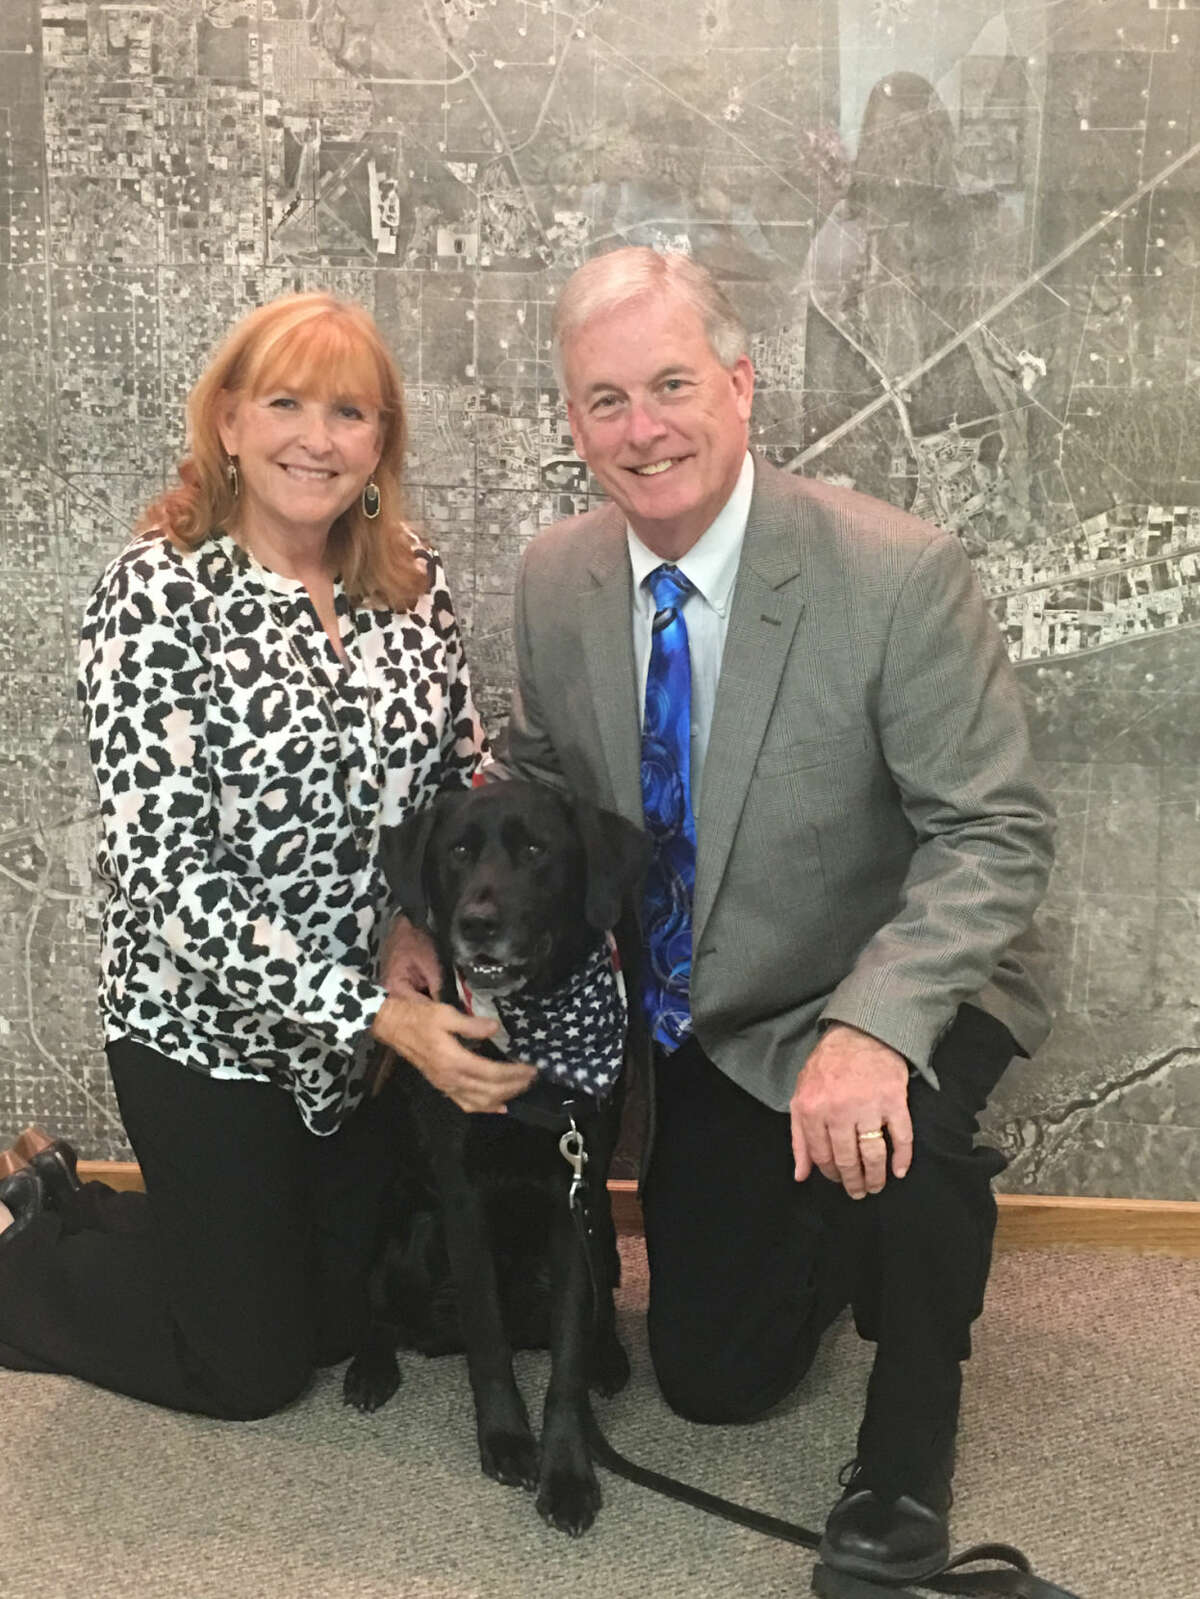 Steve Loving, vice president of corporate business development at Core Laboratories in Houston and chairman of the Faces of Freedom Clay tournament, and his wife, Cherilyn Loving, visited Midland and Odessa last week with Cargo, one of the dogs with Freedom Service Dogs.